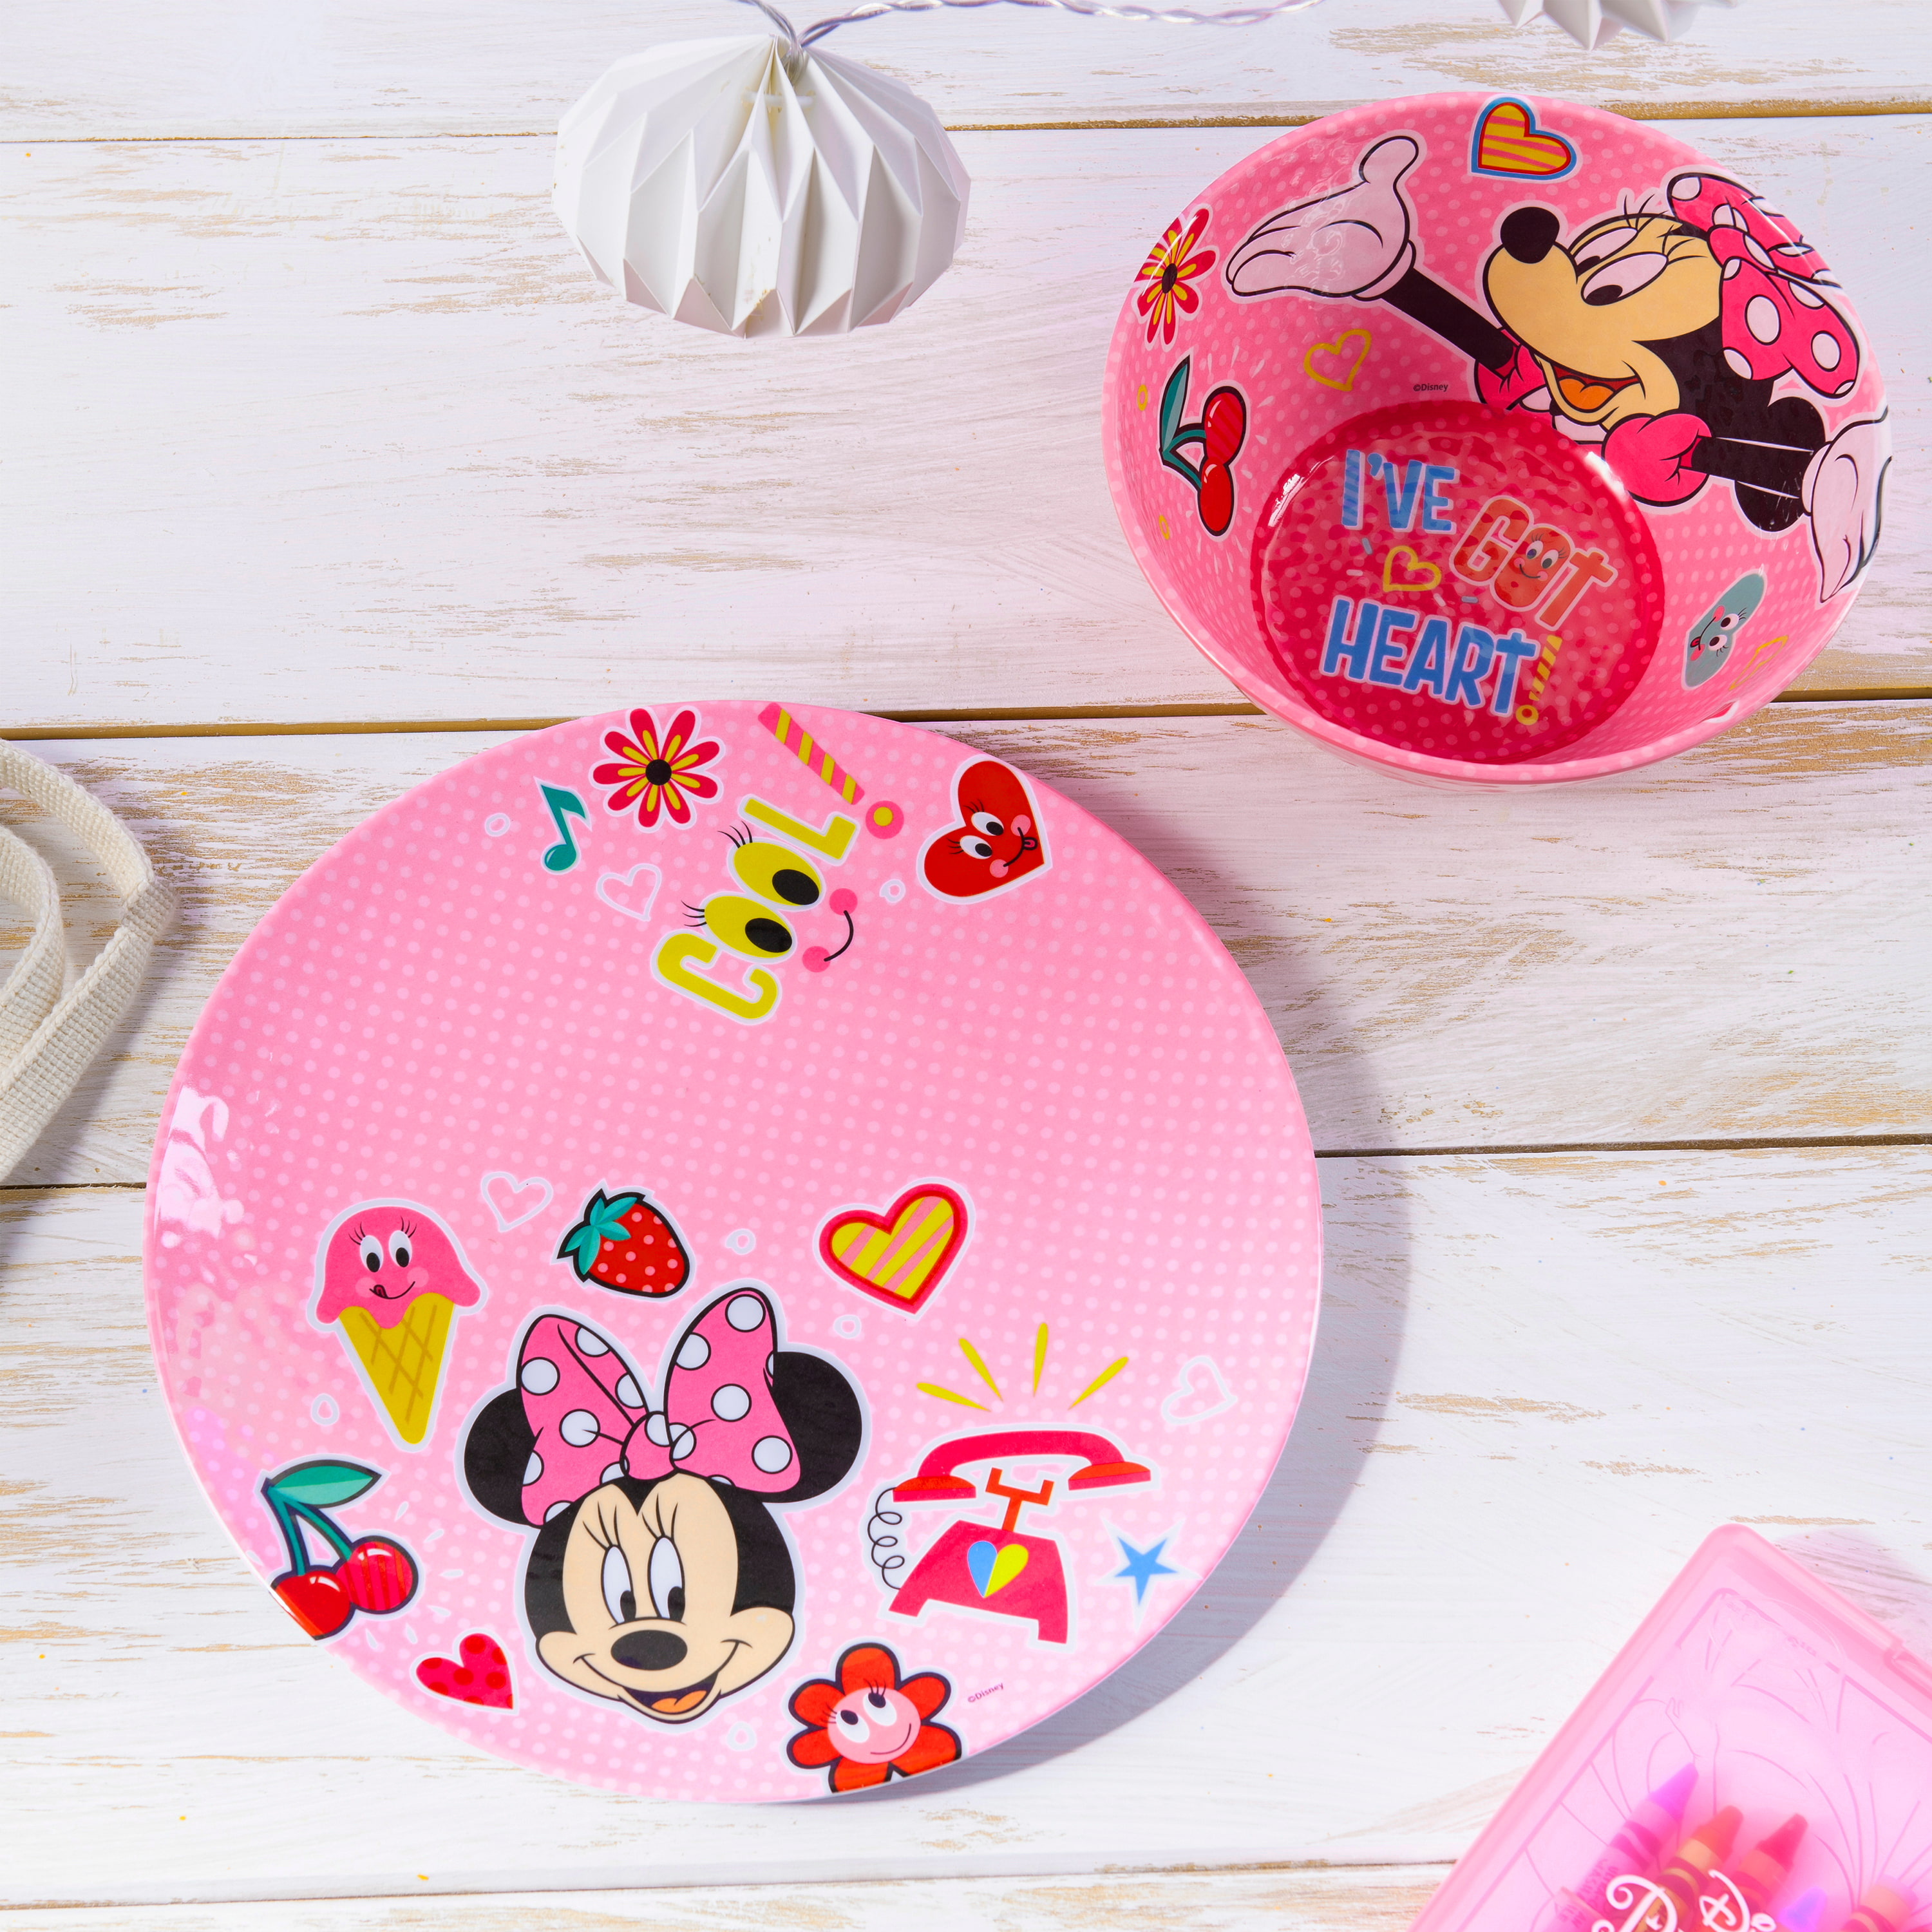 Disney Kids 9-inch Plate and 6-inch Bowl Set, Minnie Mouse, 2-piece set slideshow image 6